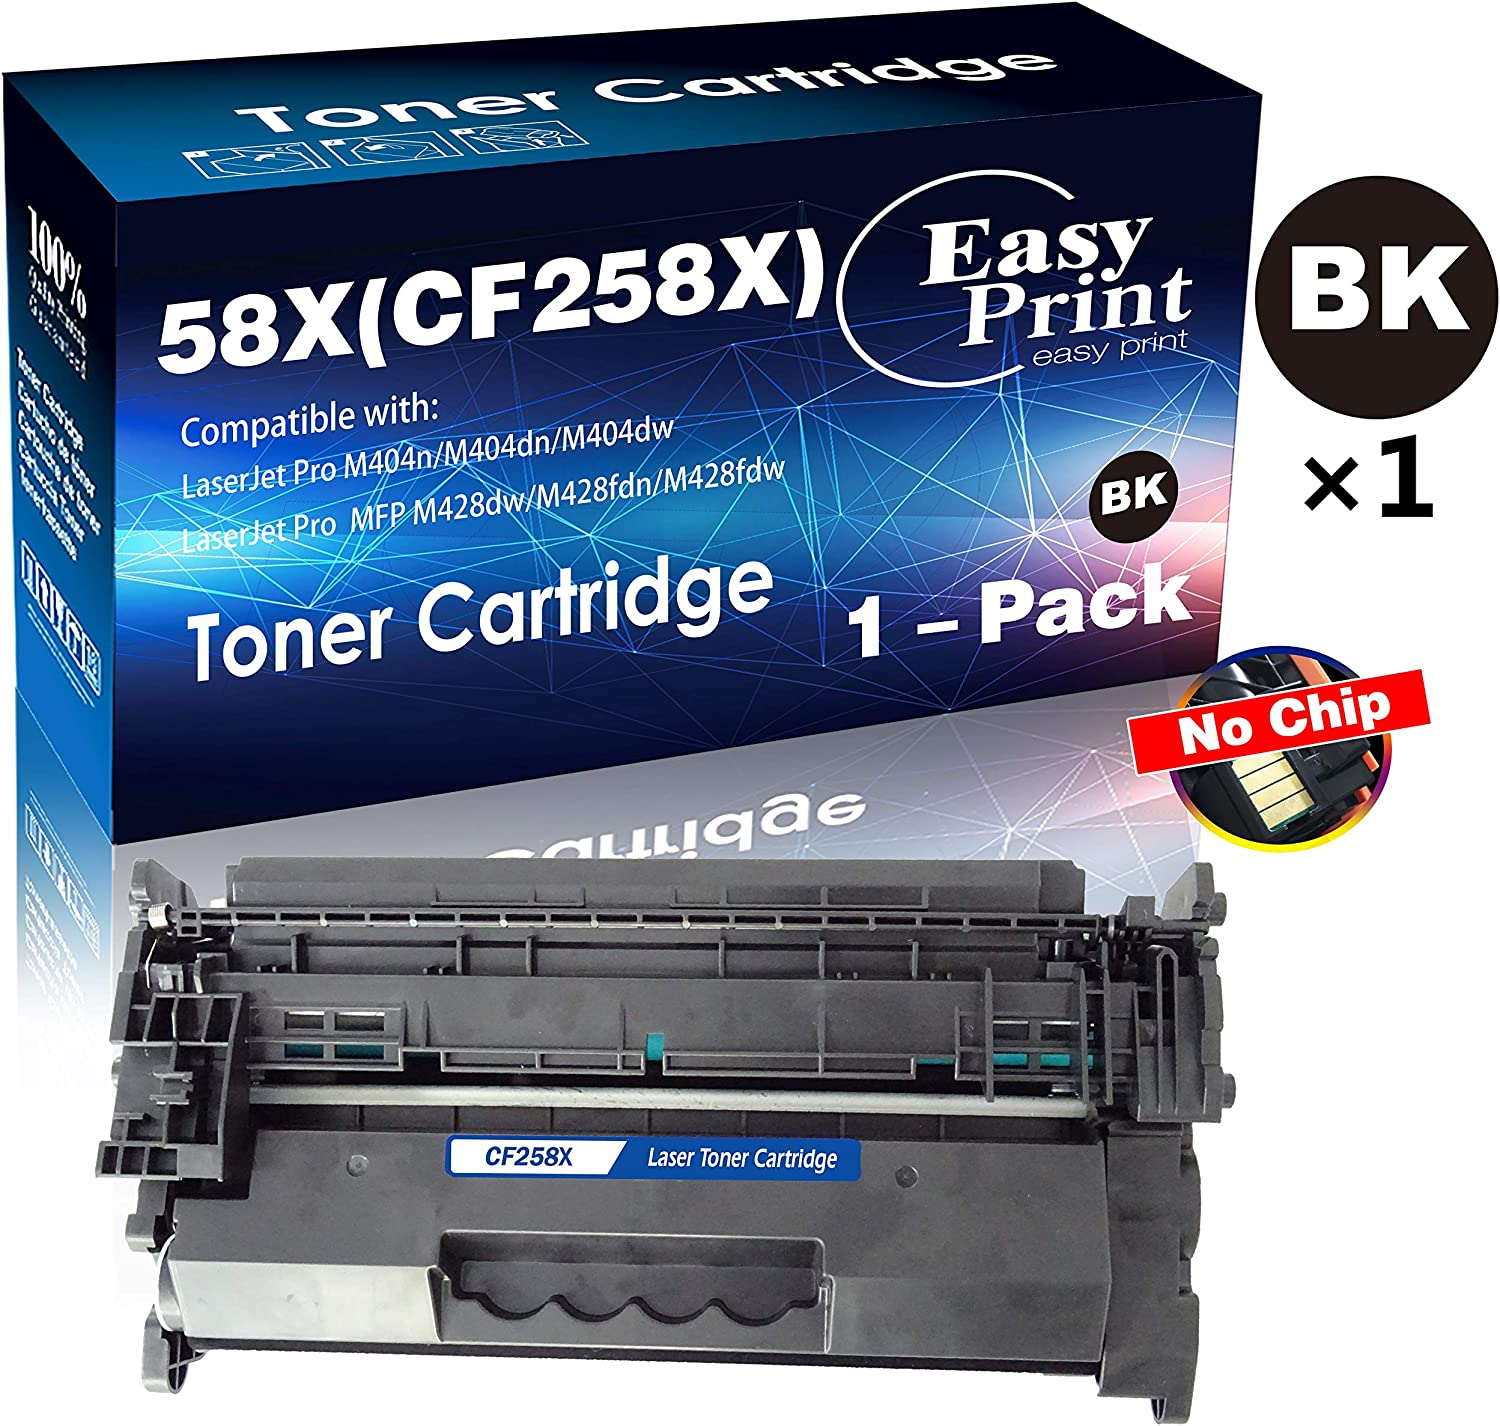 Compatible (1-Black, High Yield) 58X CF258X Toner Cartridge 58A CF258A Used with HP Laserjet Pro M404n M404dn M404dw MFP M428fdw M428dw M428fdn No Chip, by EasyPrint